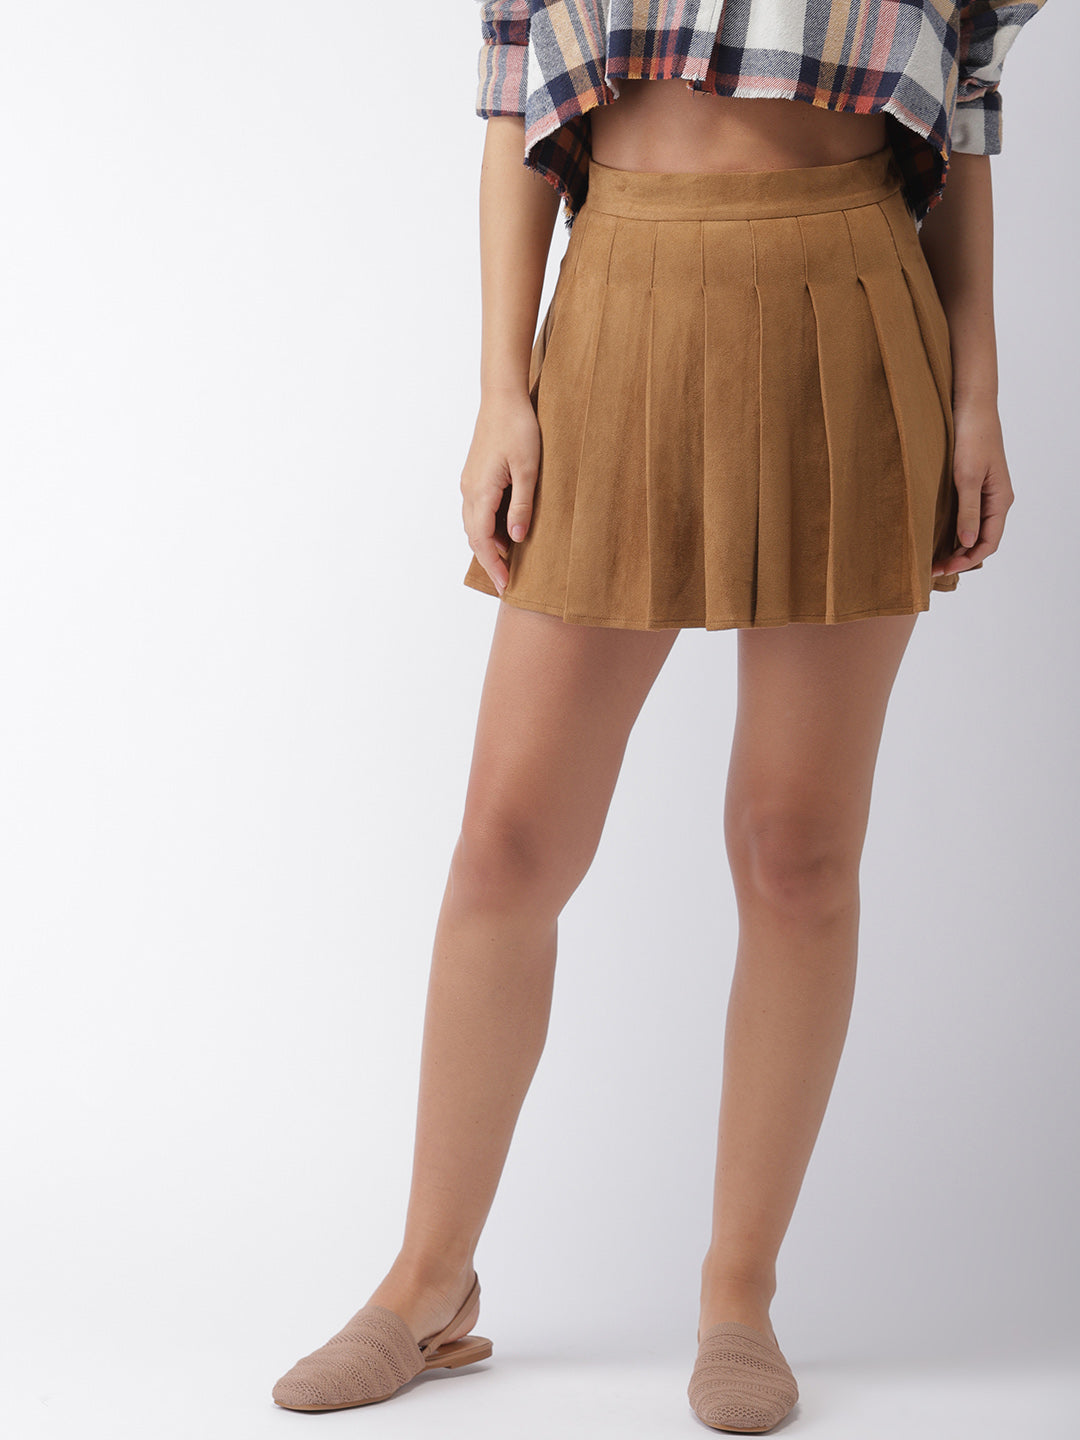 Brown Solid Flared Skirt